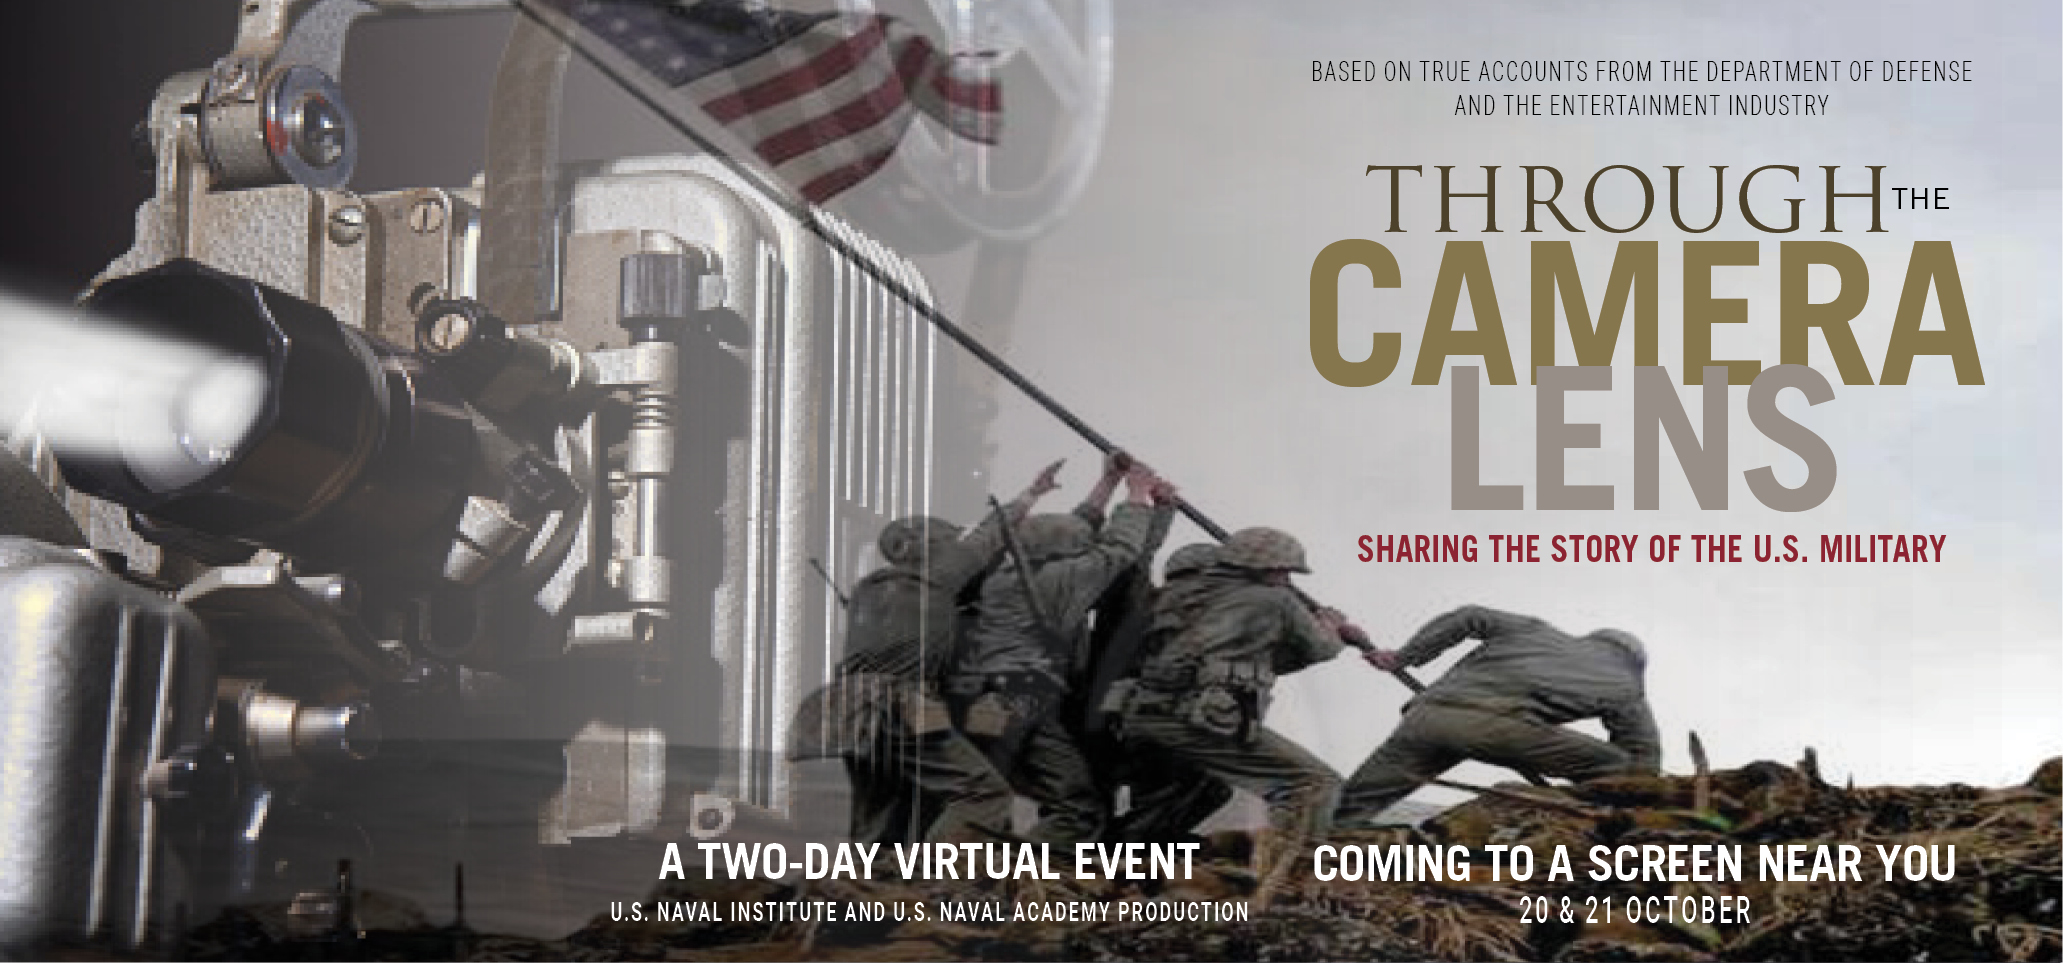 Image for Through the Camera Lens: Sharing the Story of the US Military. Produced by the US Naval Institute and the Stockdale Center for Ethical Leadership.